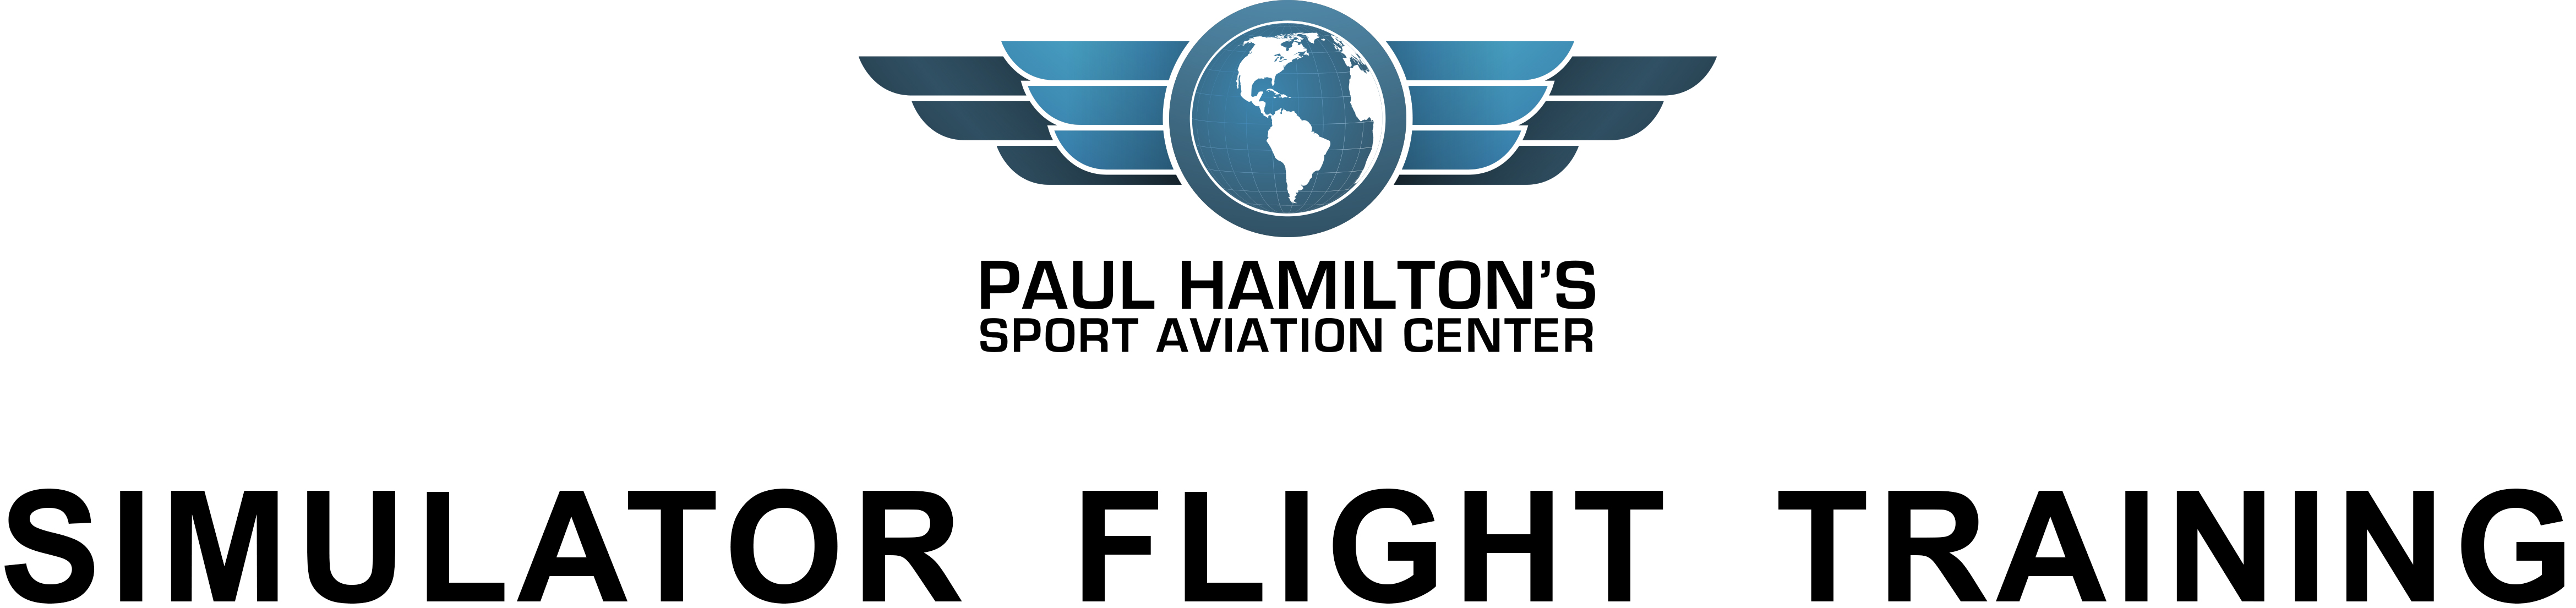 Simulator Flight Training | Paul Hamilton's Sport Aviation Center LLC